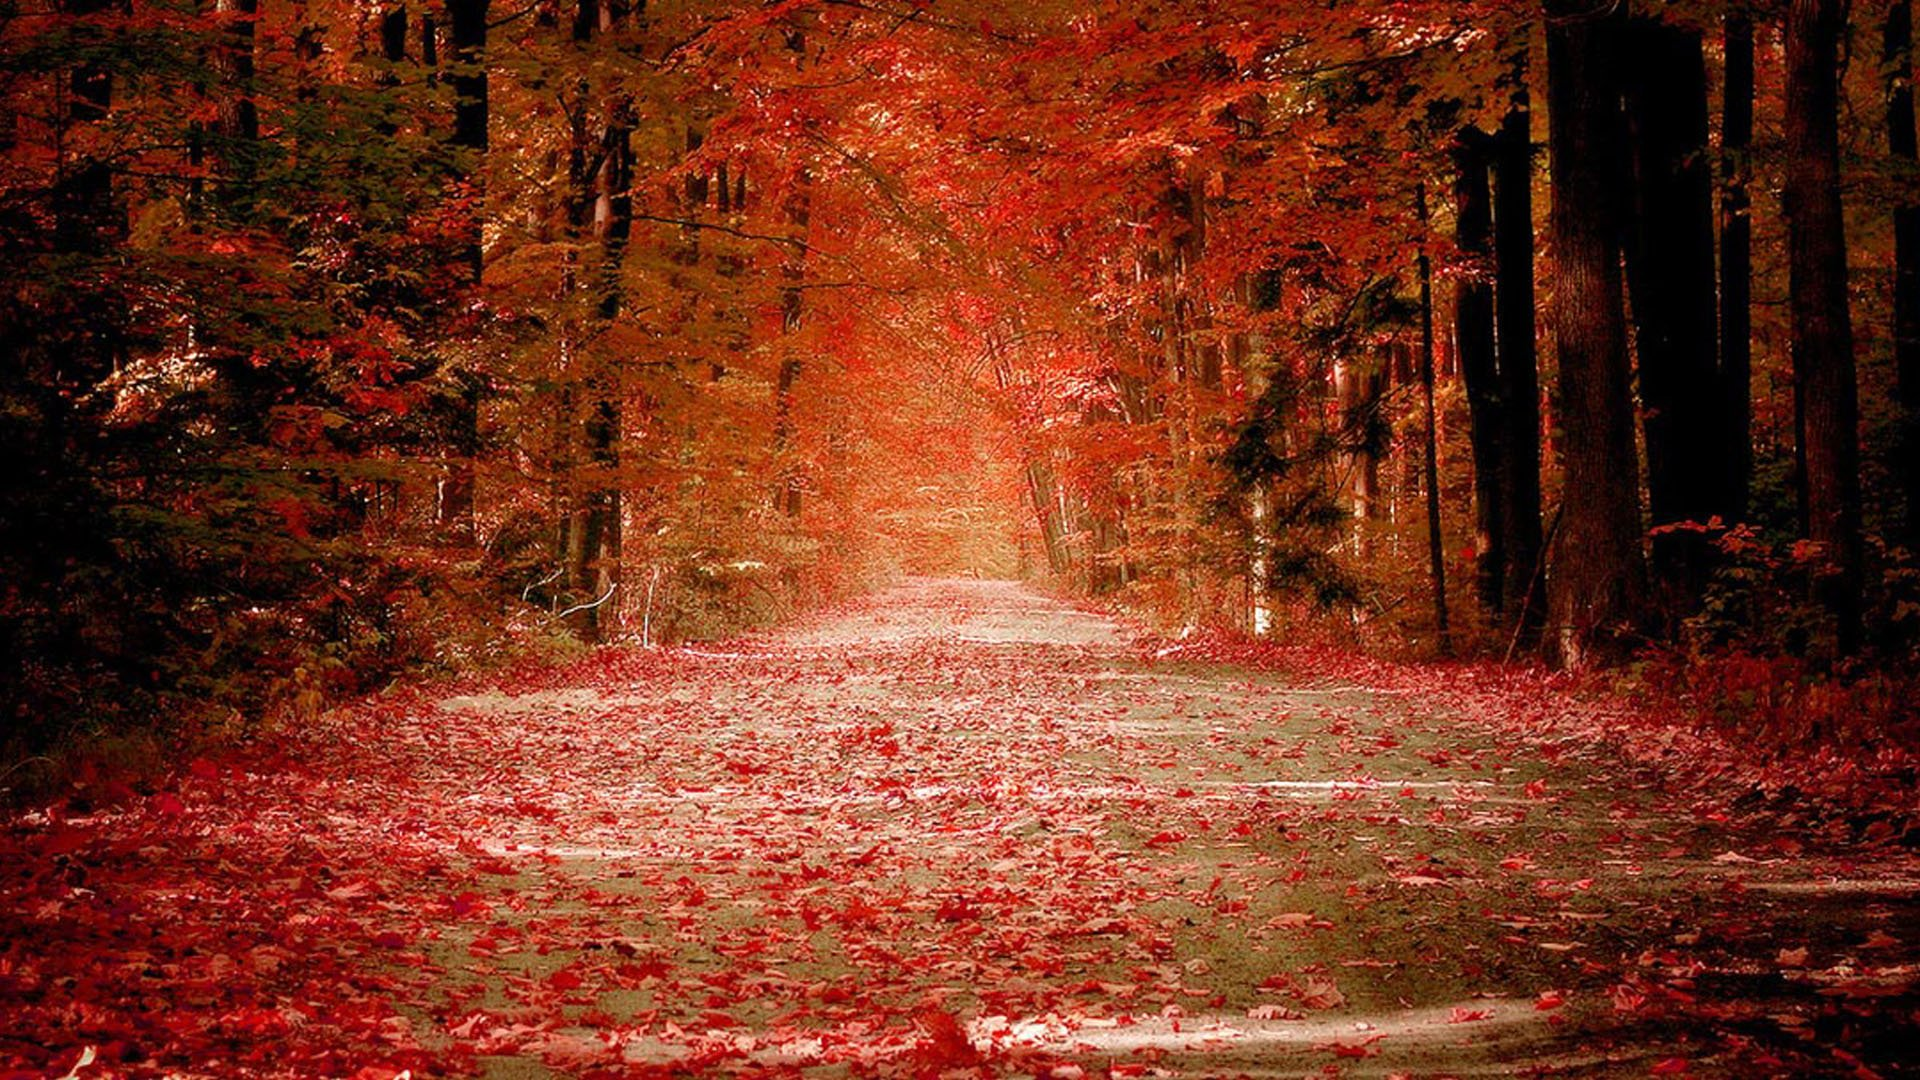 Autumn Nature Wallpapers HD Pictures One HD Wallpaper 1920x1080